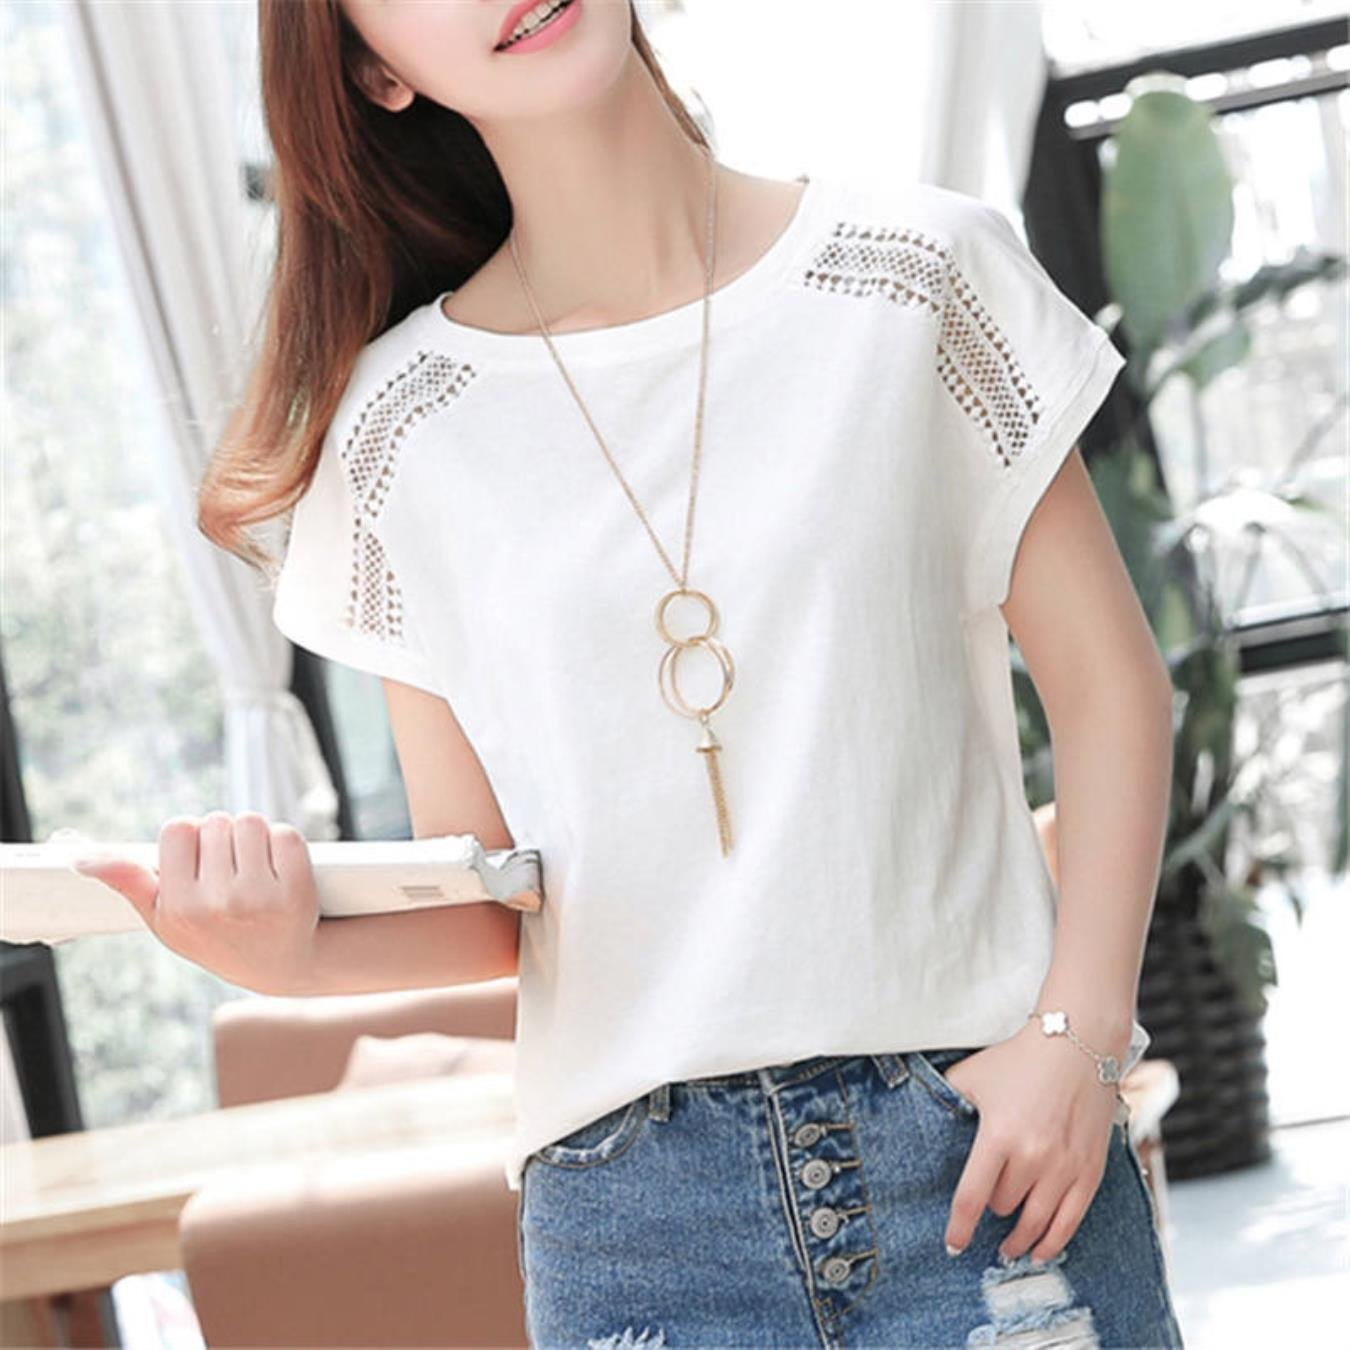 Cotton Summer Blouses Lace Batwing Sleeve Shirts For Womens Tops Shirts Plus Size Women Clothing Korean